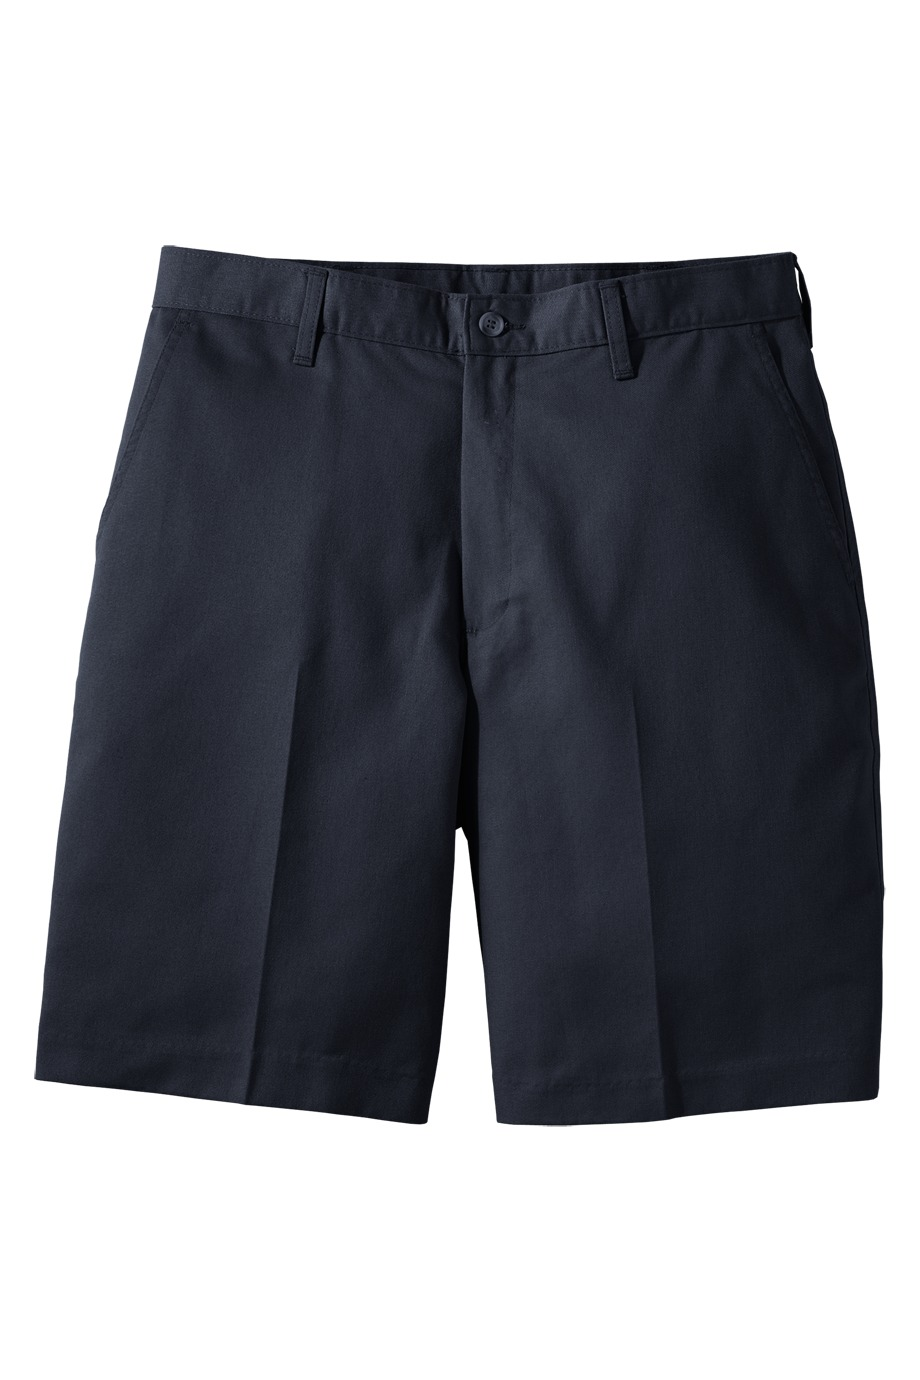 Edwards Garment 2460 - Men's Flat Front Short